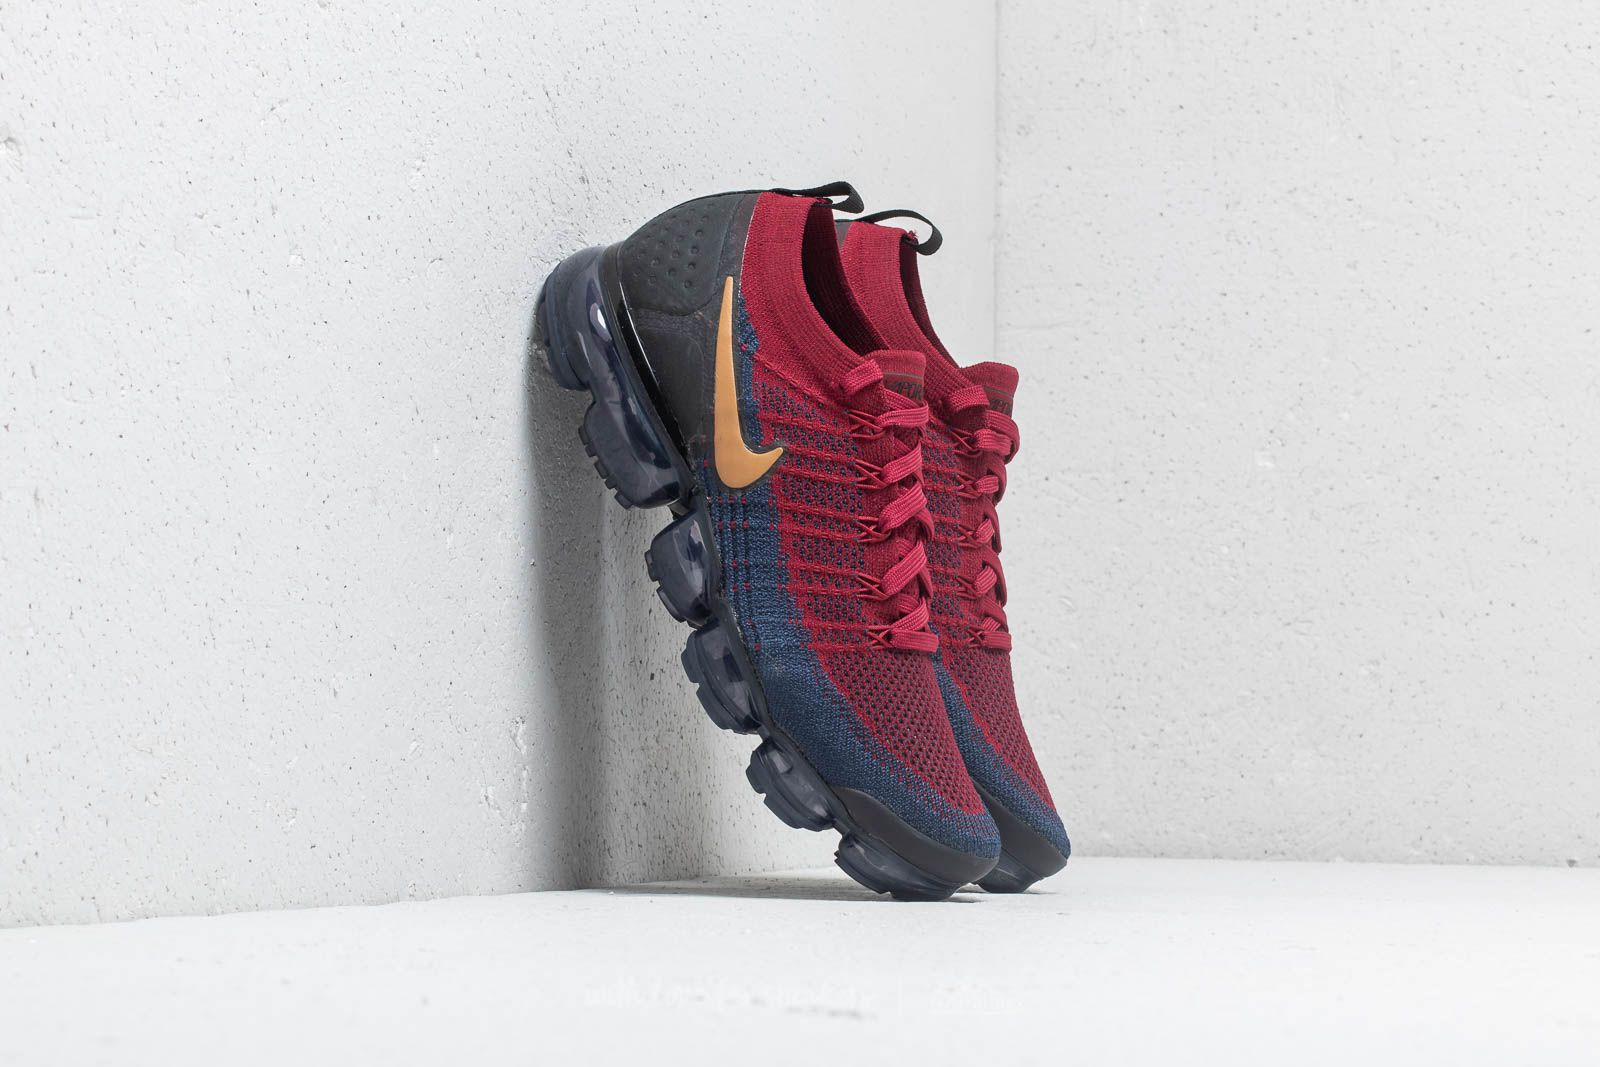 481ce8506a2c Nike Air Vapormax Flyknit 2 Team Red  Wheat-Obsidian-Black ...